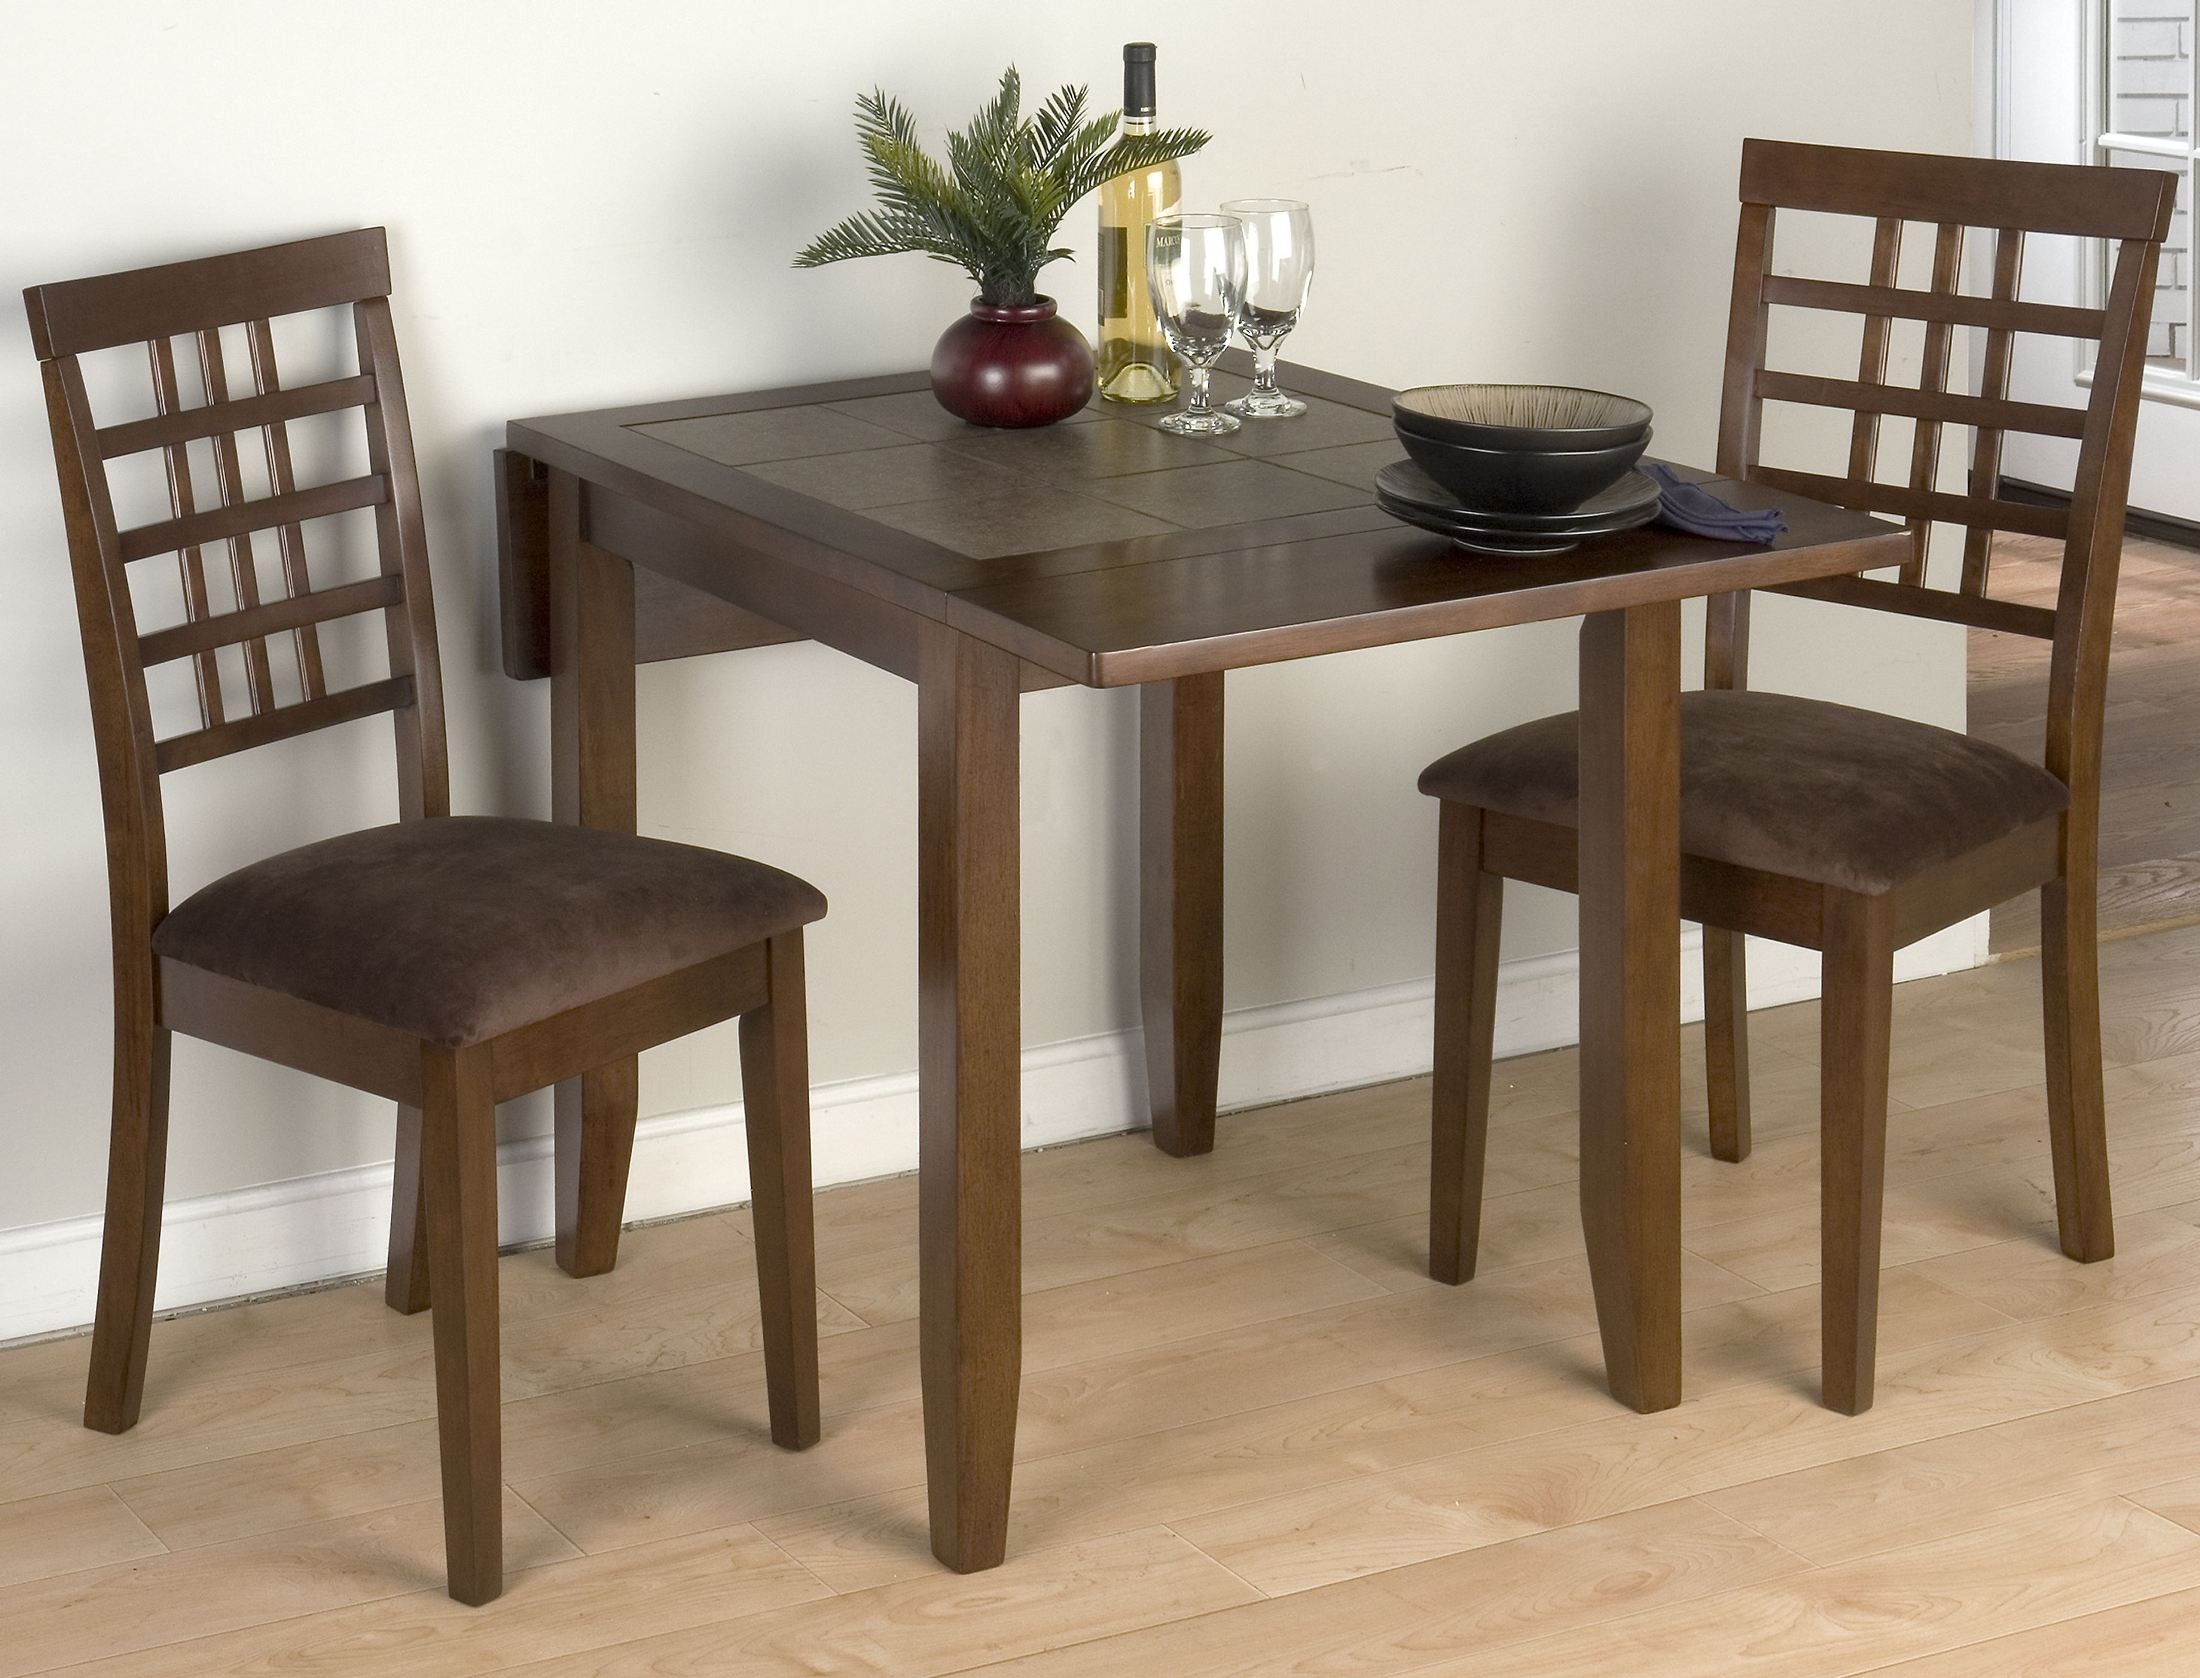 Caleb Brown Terra Tiles Drop Leaf Extendable Dining Room Set 976 30 Jofran